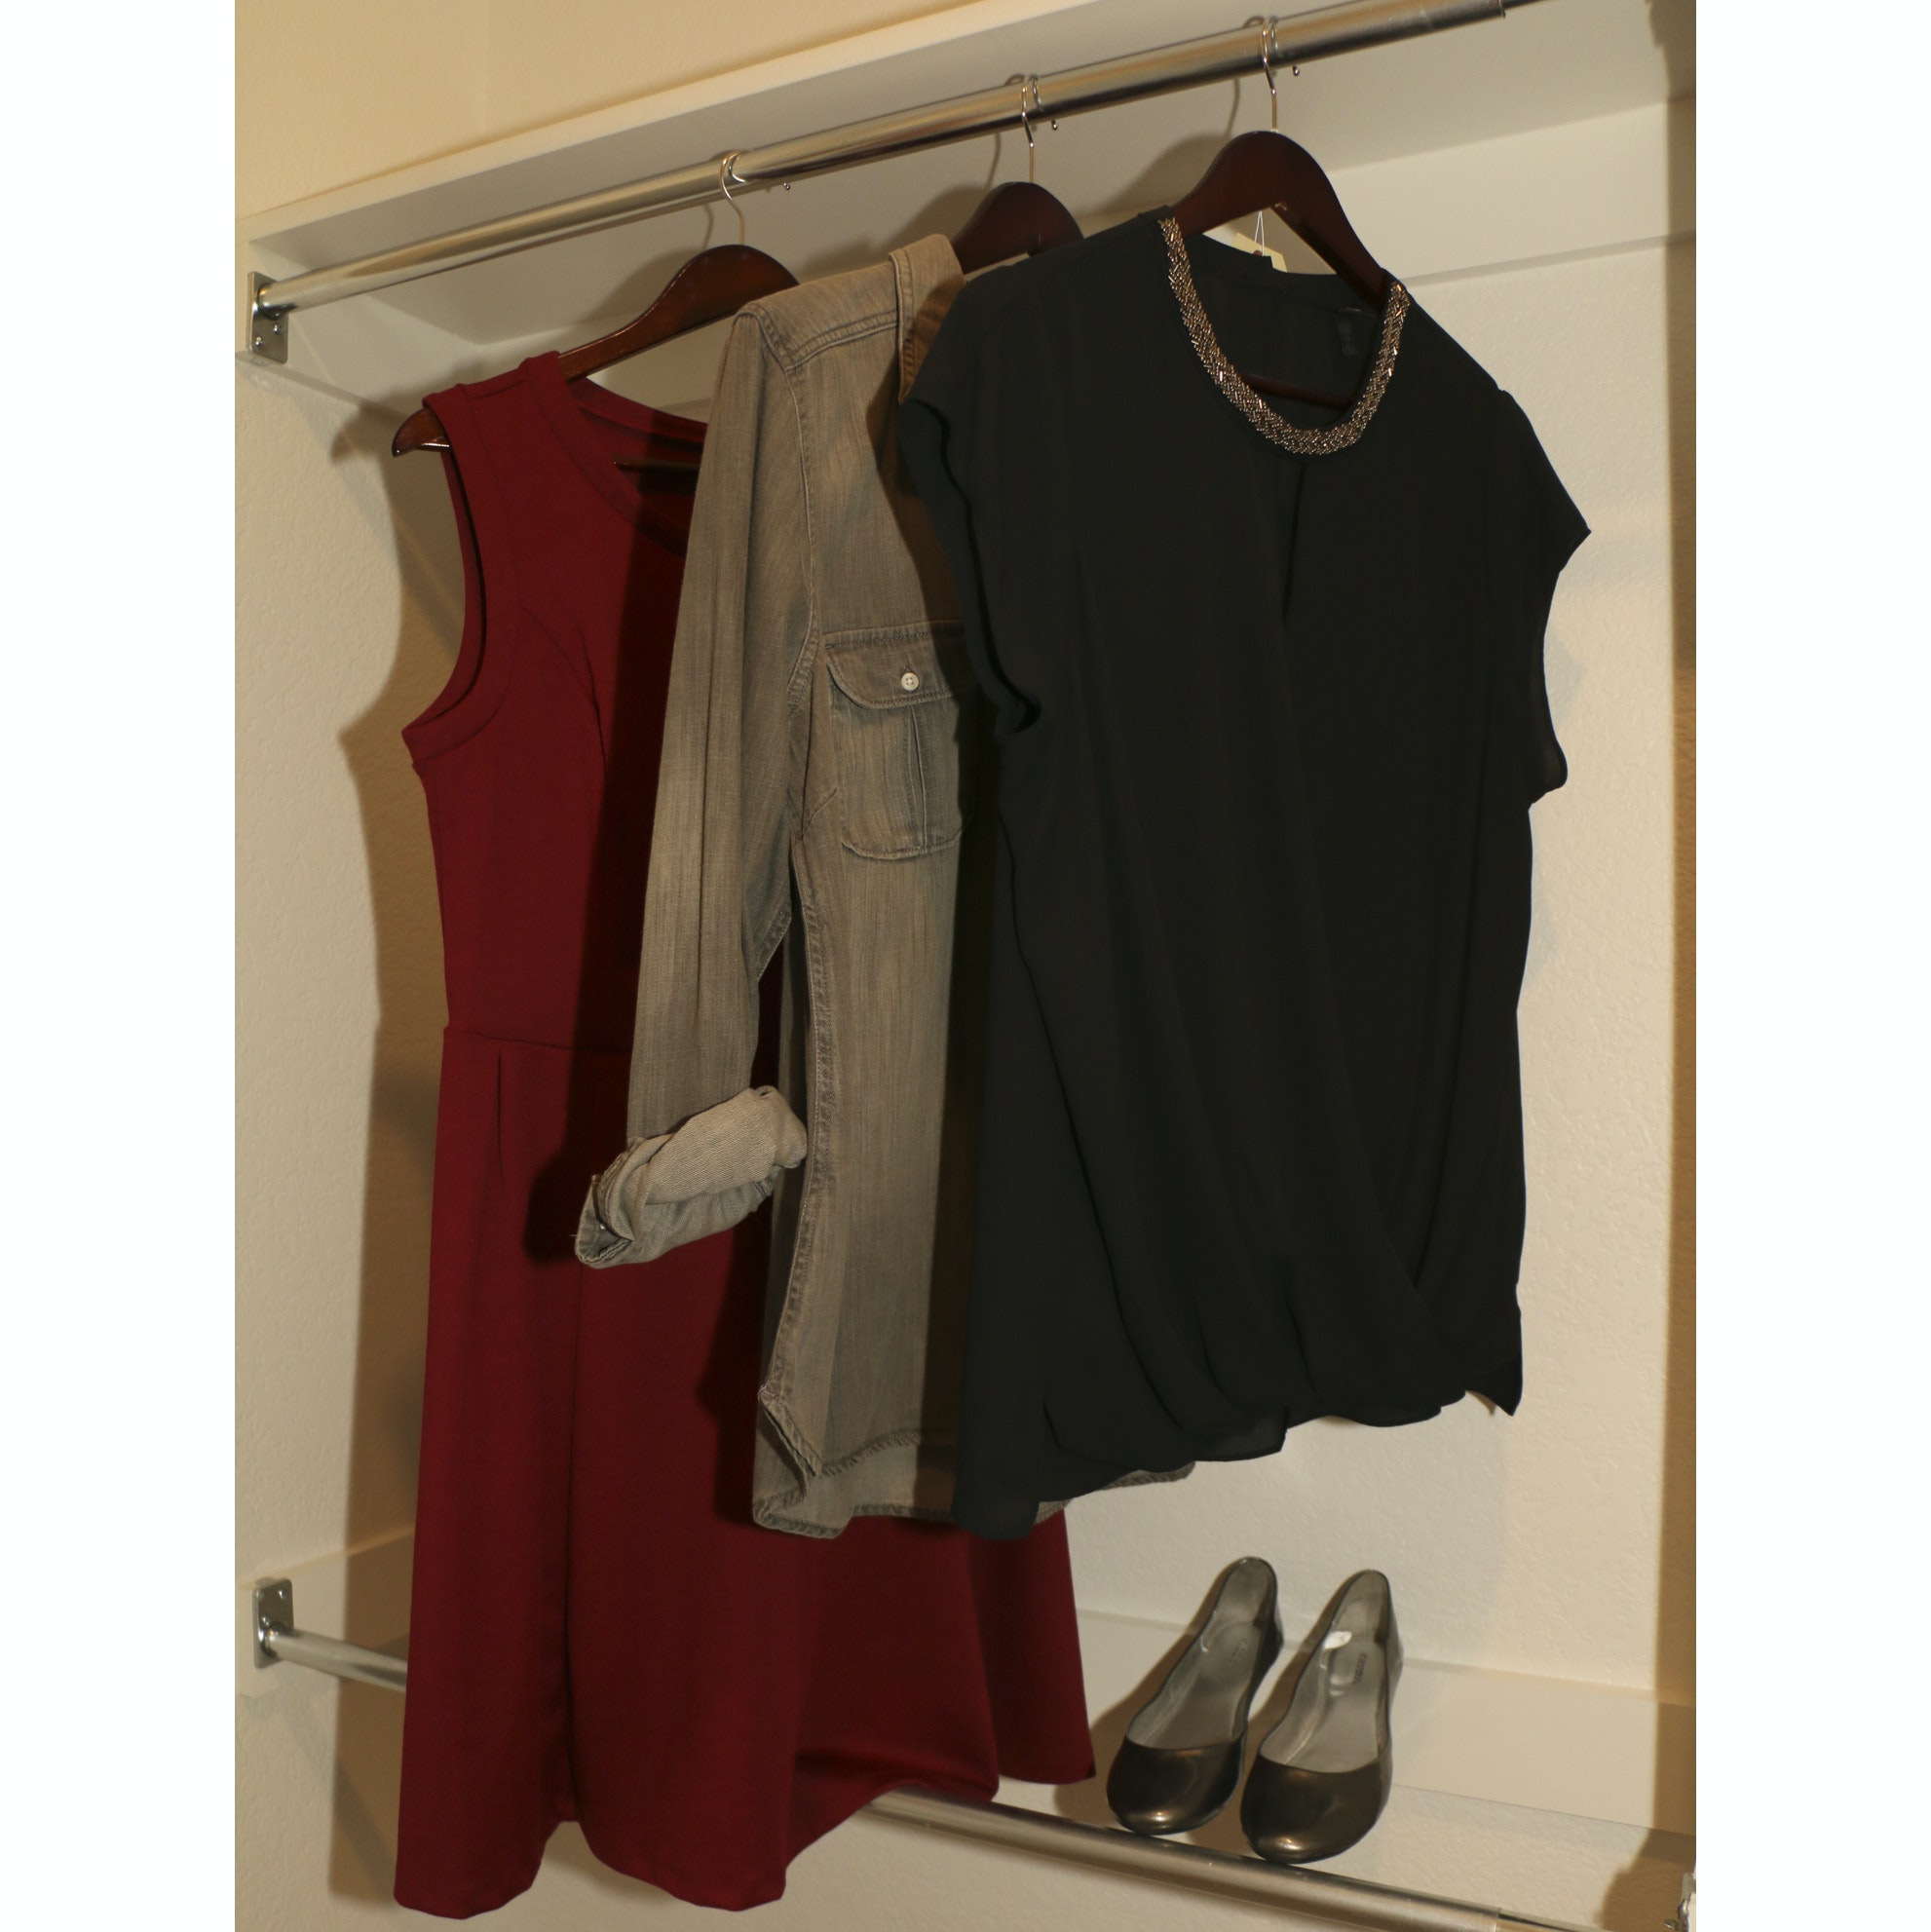 Women's Clothing Separates Including Mossimo and Merona